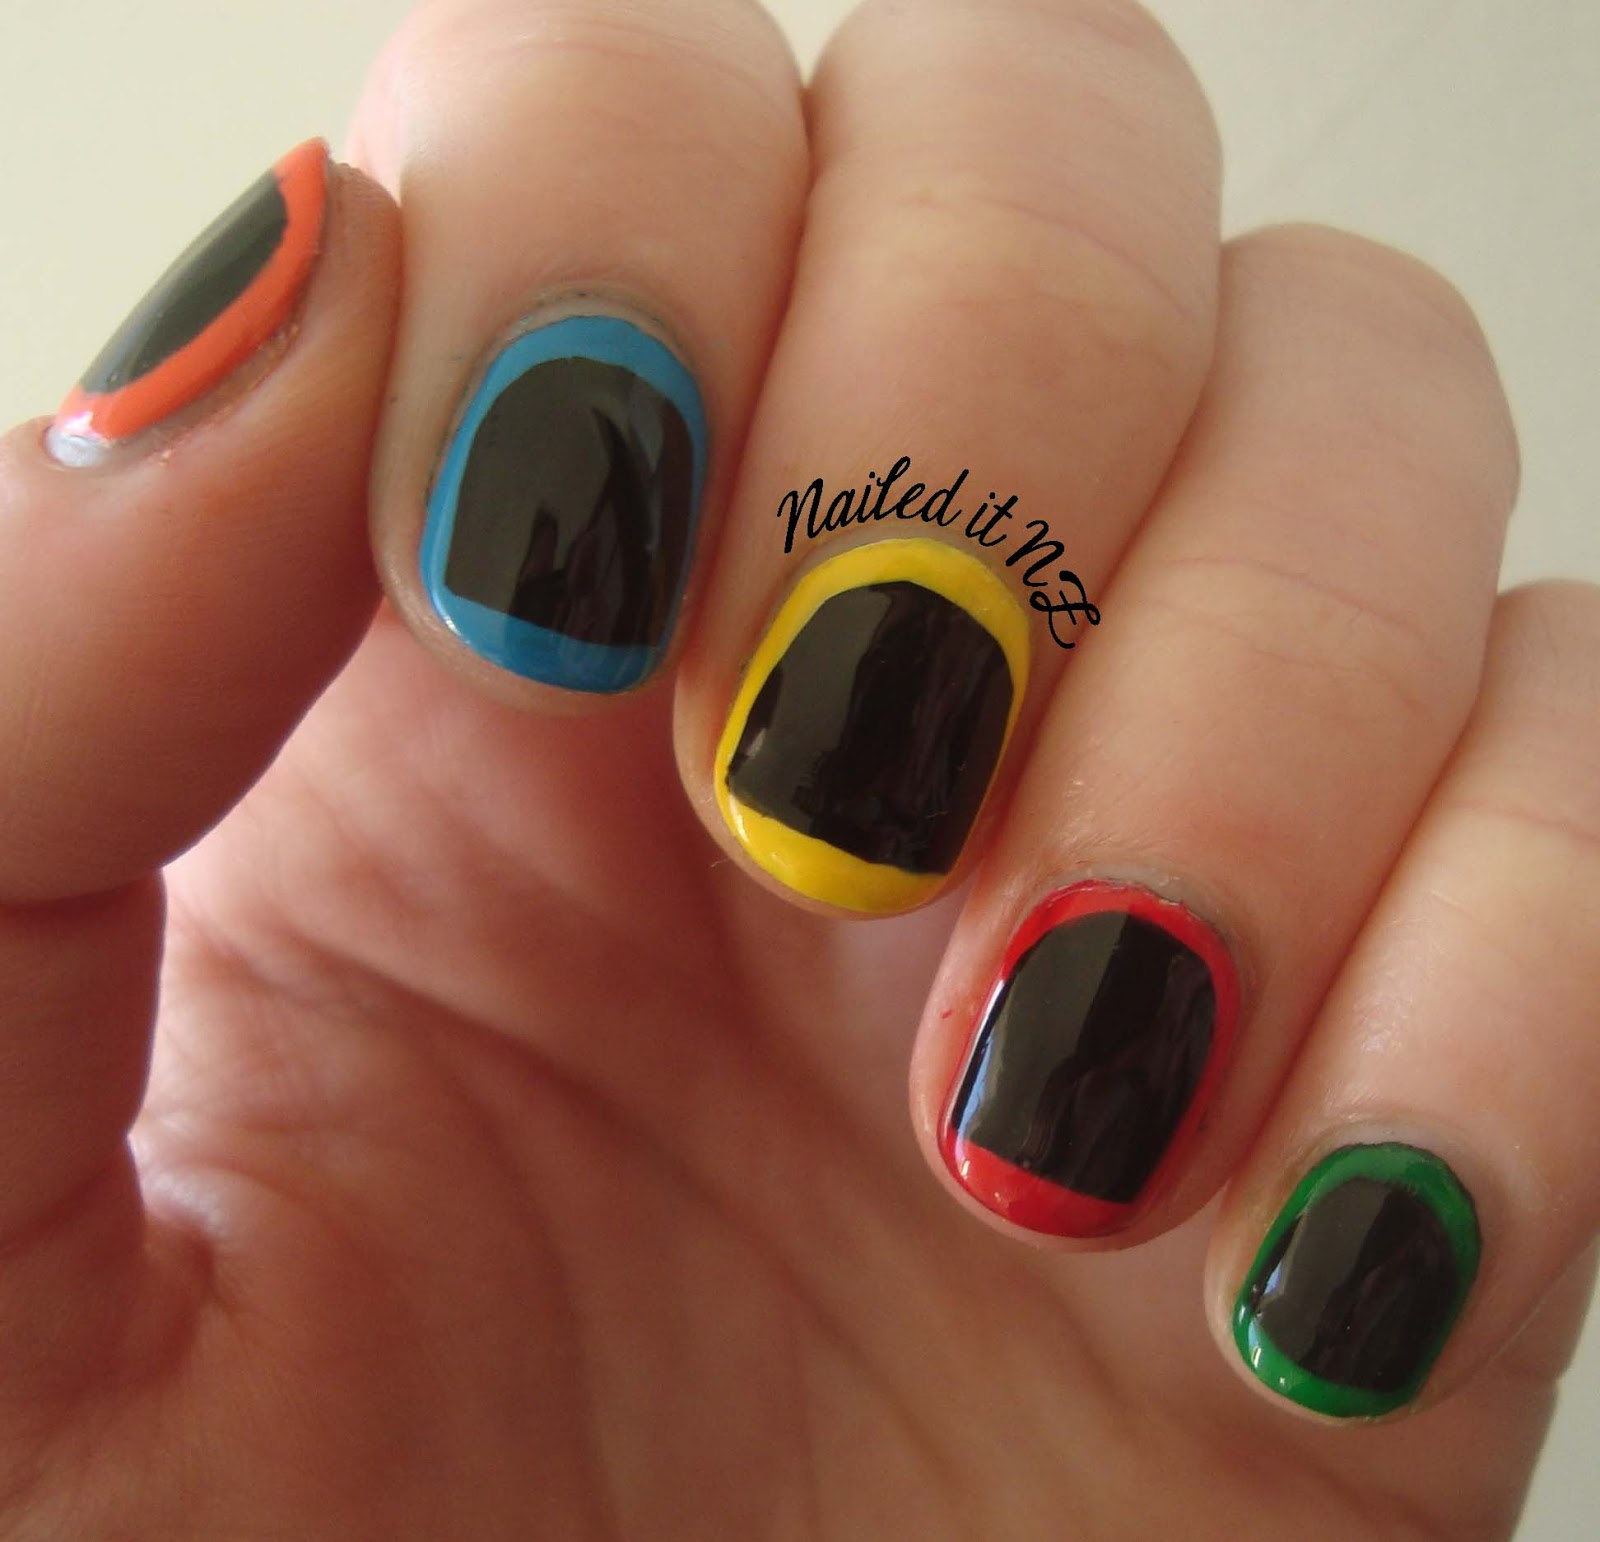 Nail Art For Short Nails At Home: Nail Art For Short Nails #2: Guitar Hero Nails